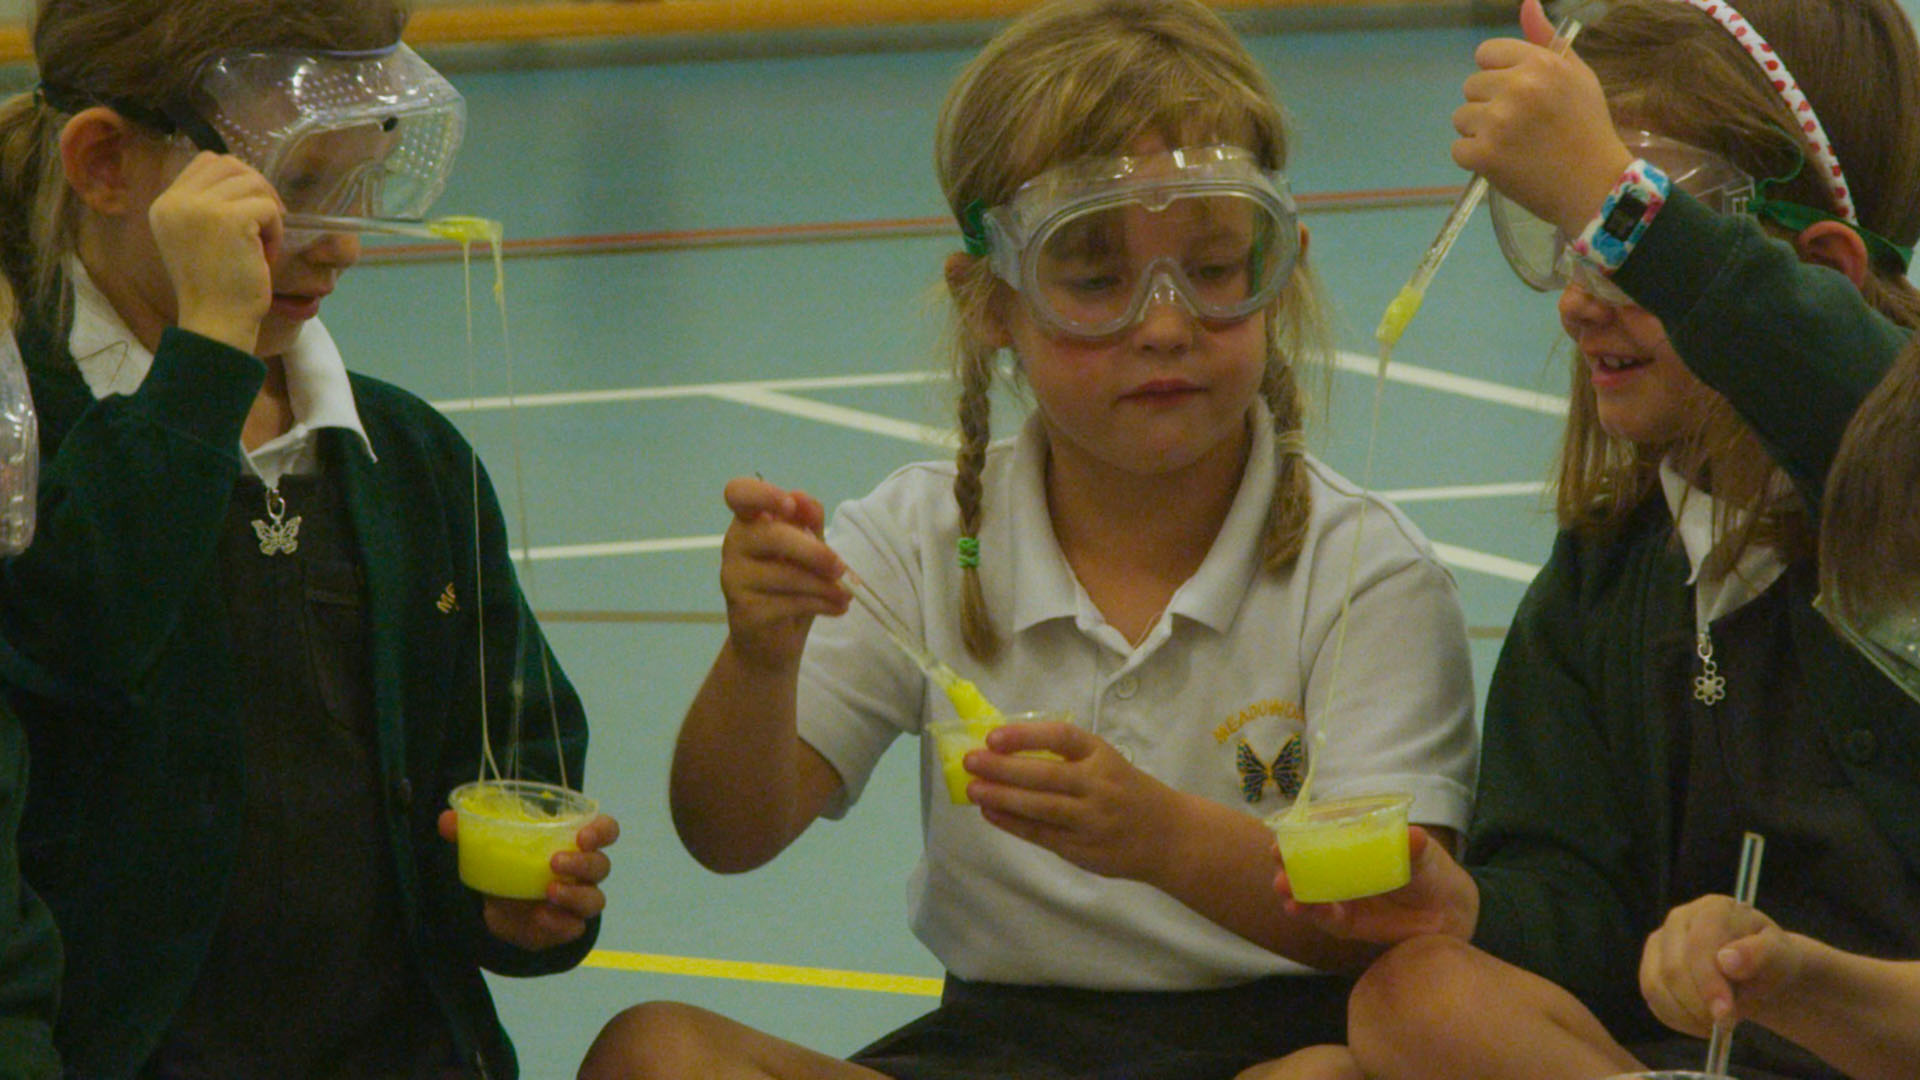 School children experimenting with science